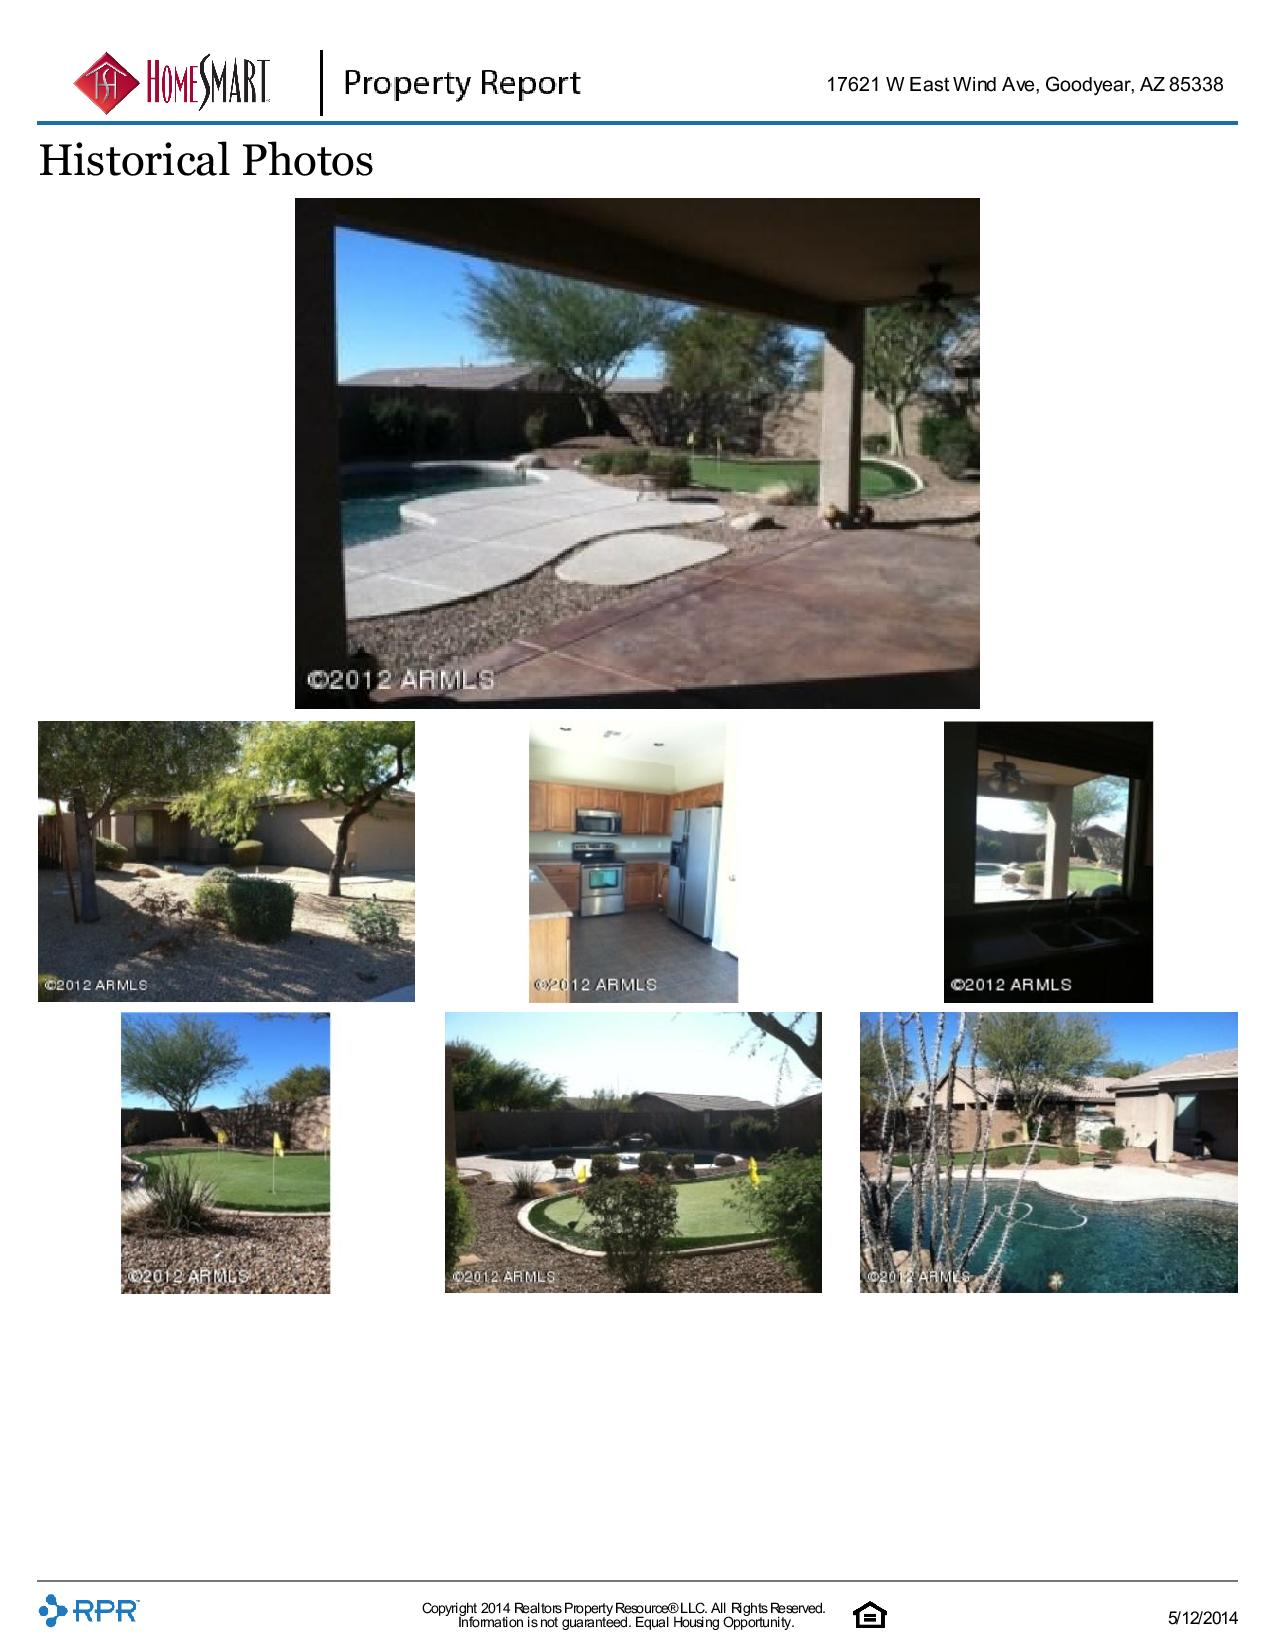 17621-W-East-Wind-Ave-Goodyear-AZ-85338-page-007